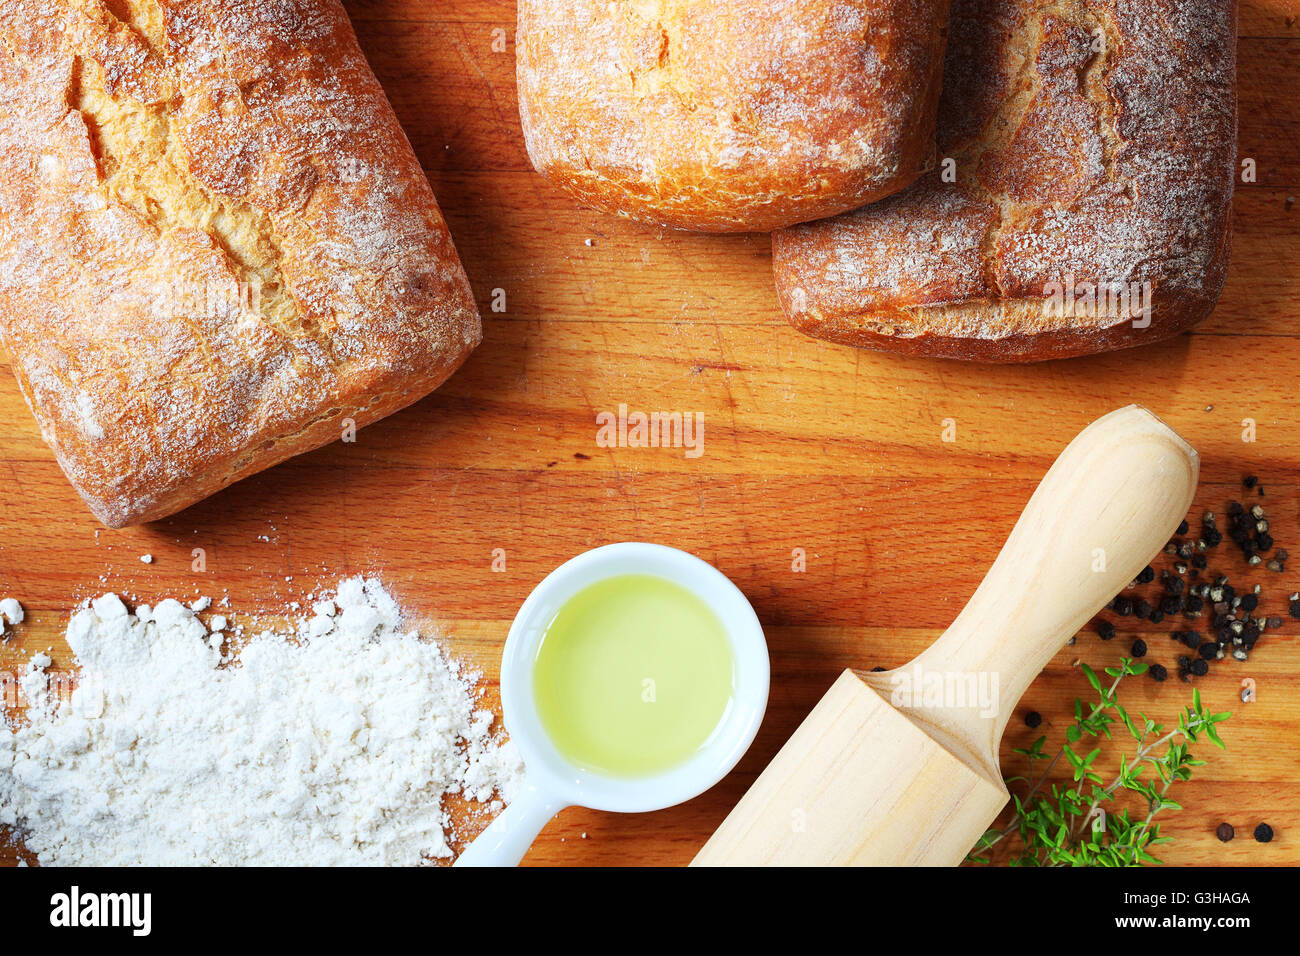 Artisan bread with ingredients on a wooden table. - Stock Image